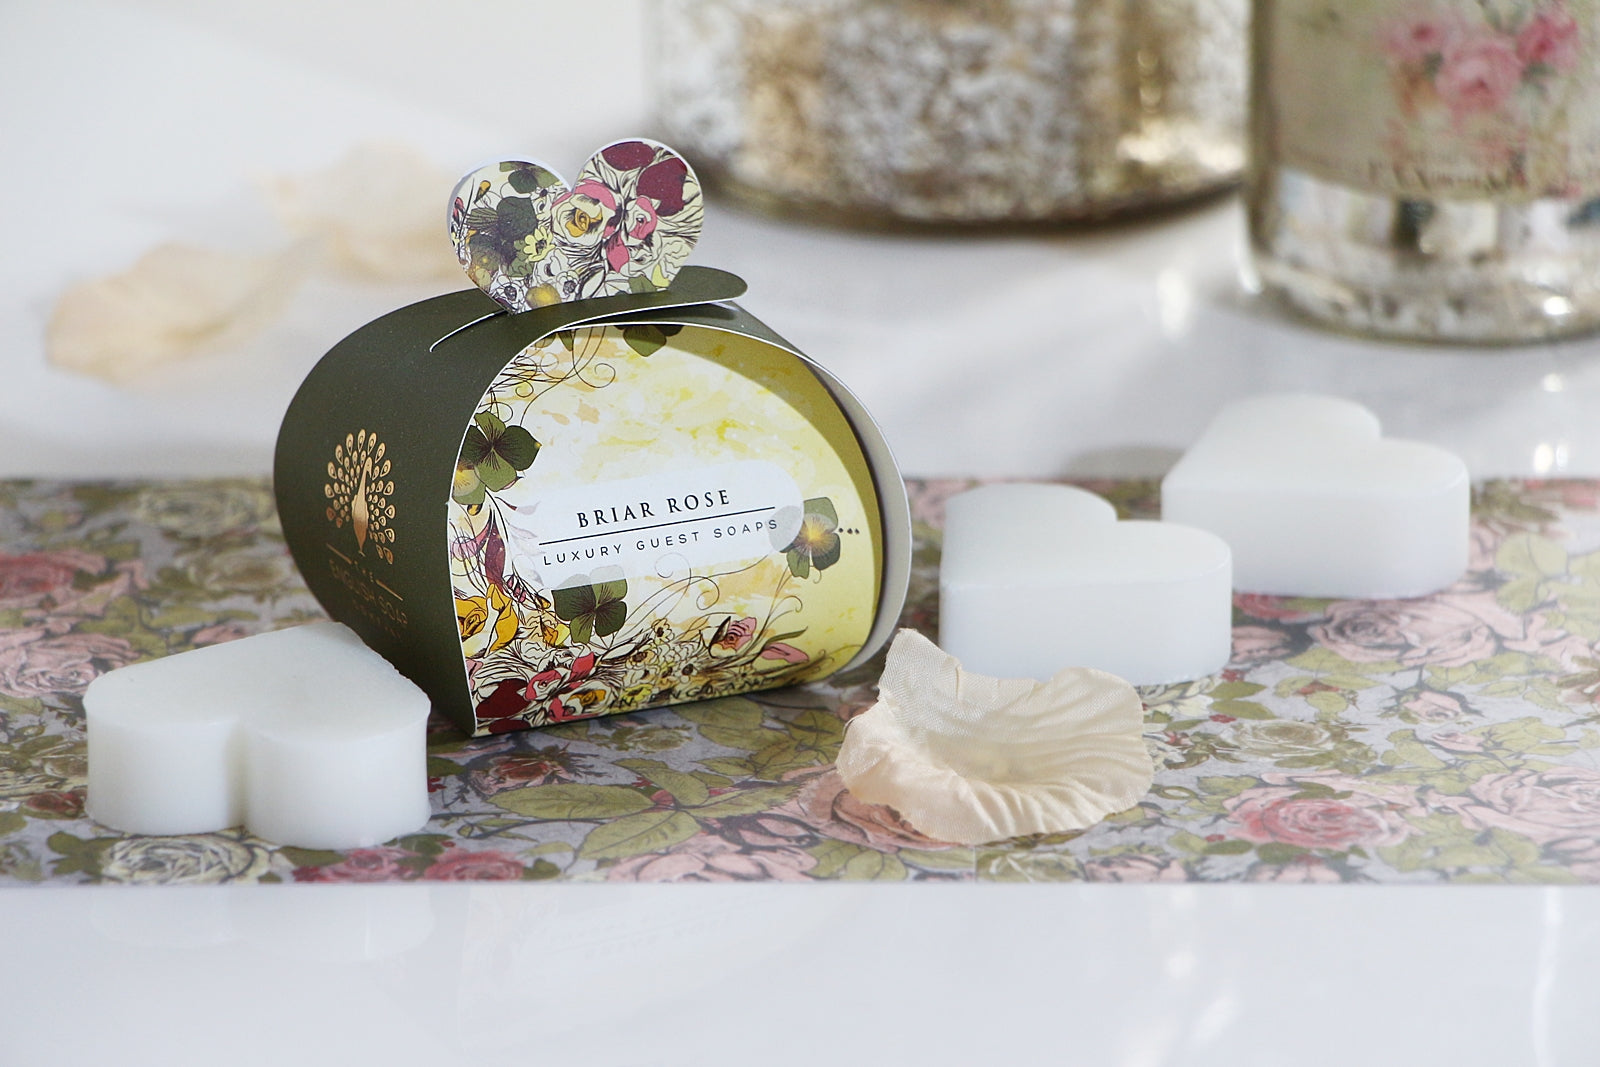 English Soap Company Luxury Guest Soaps - Briar Rose